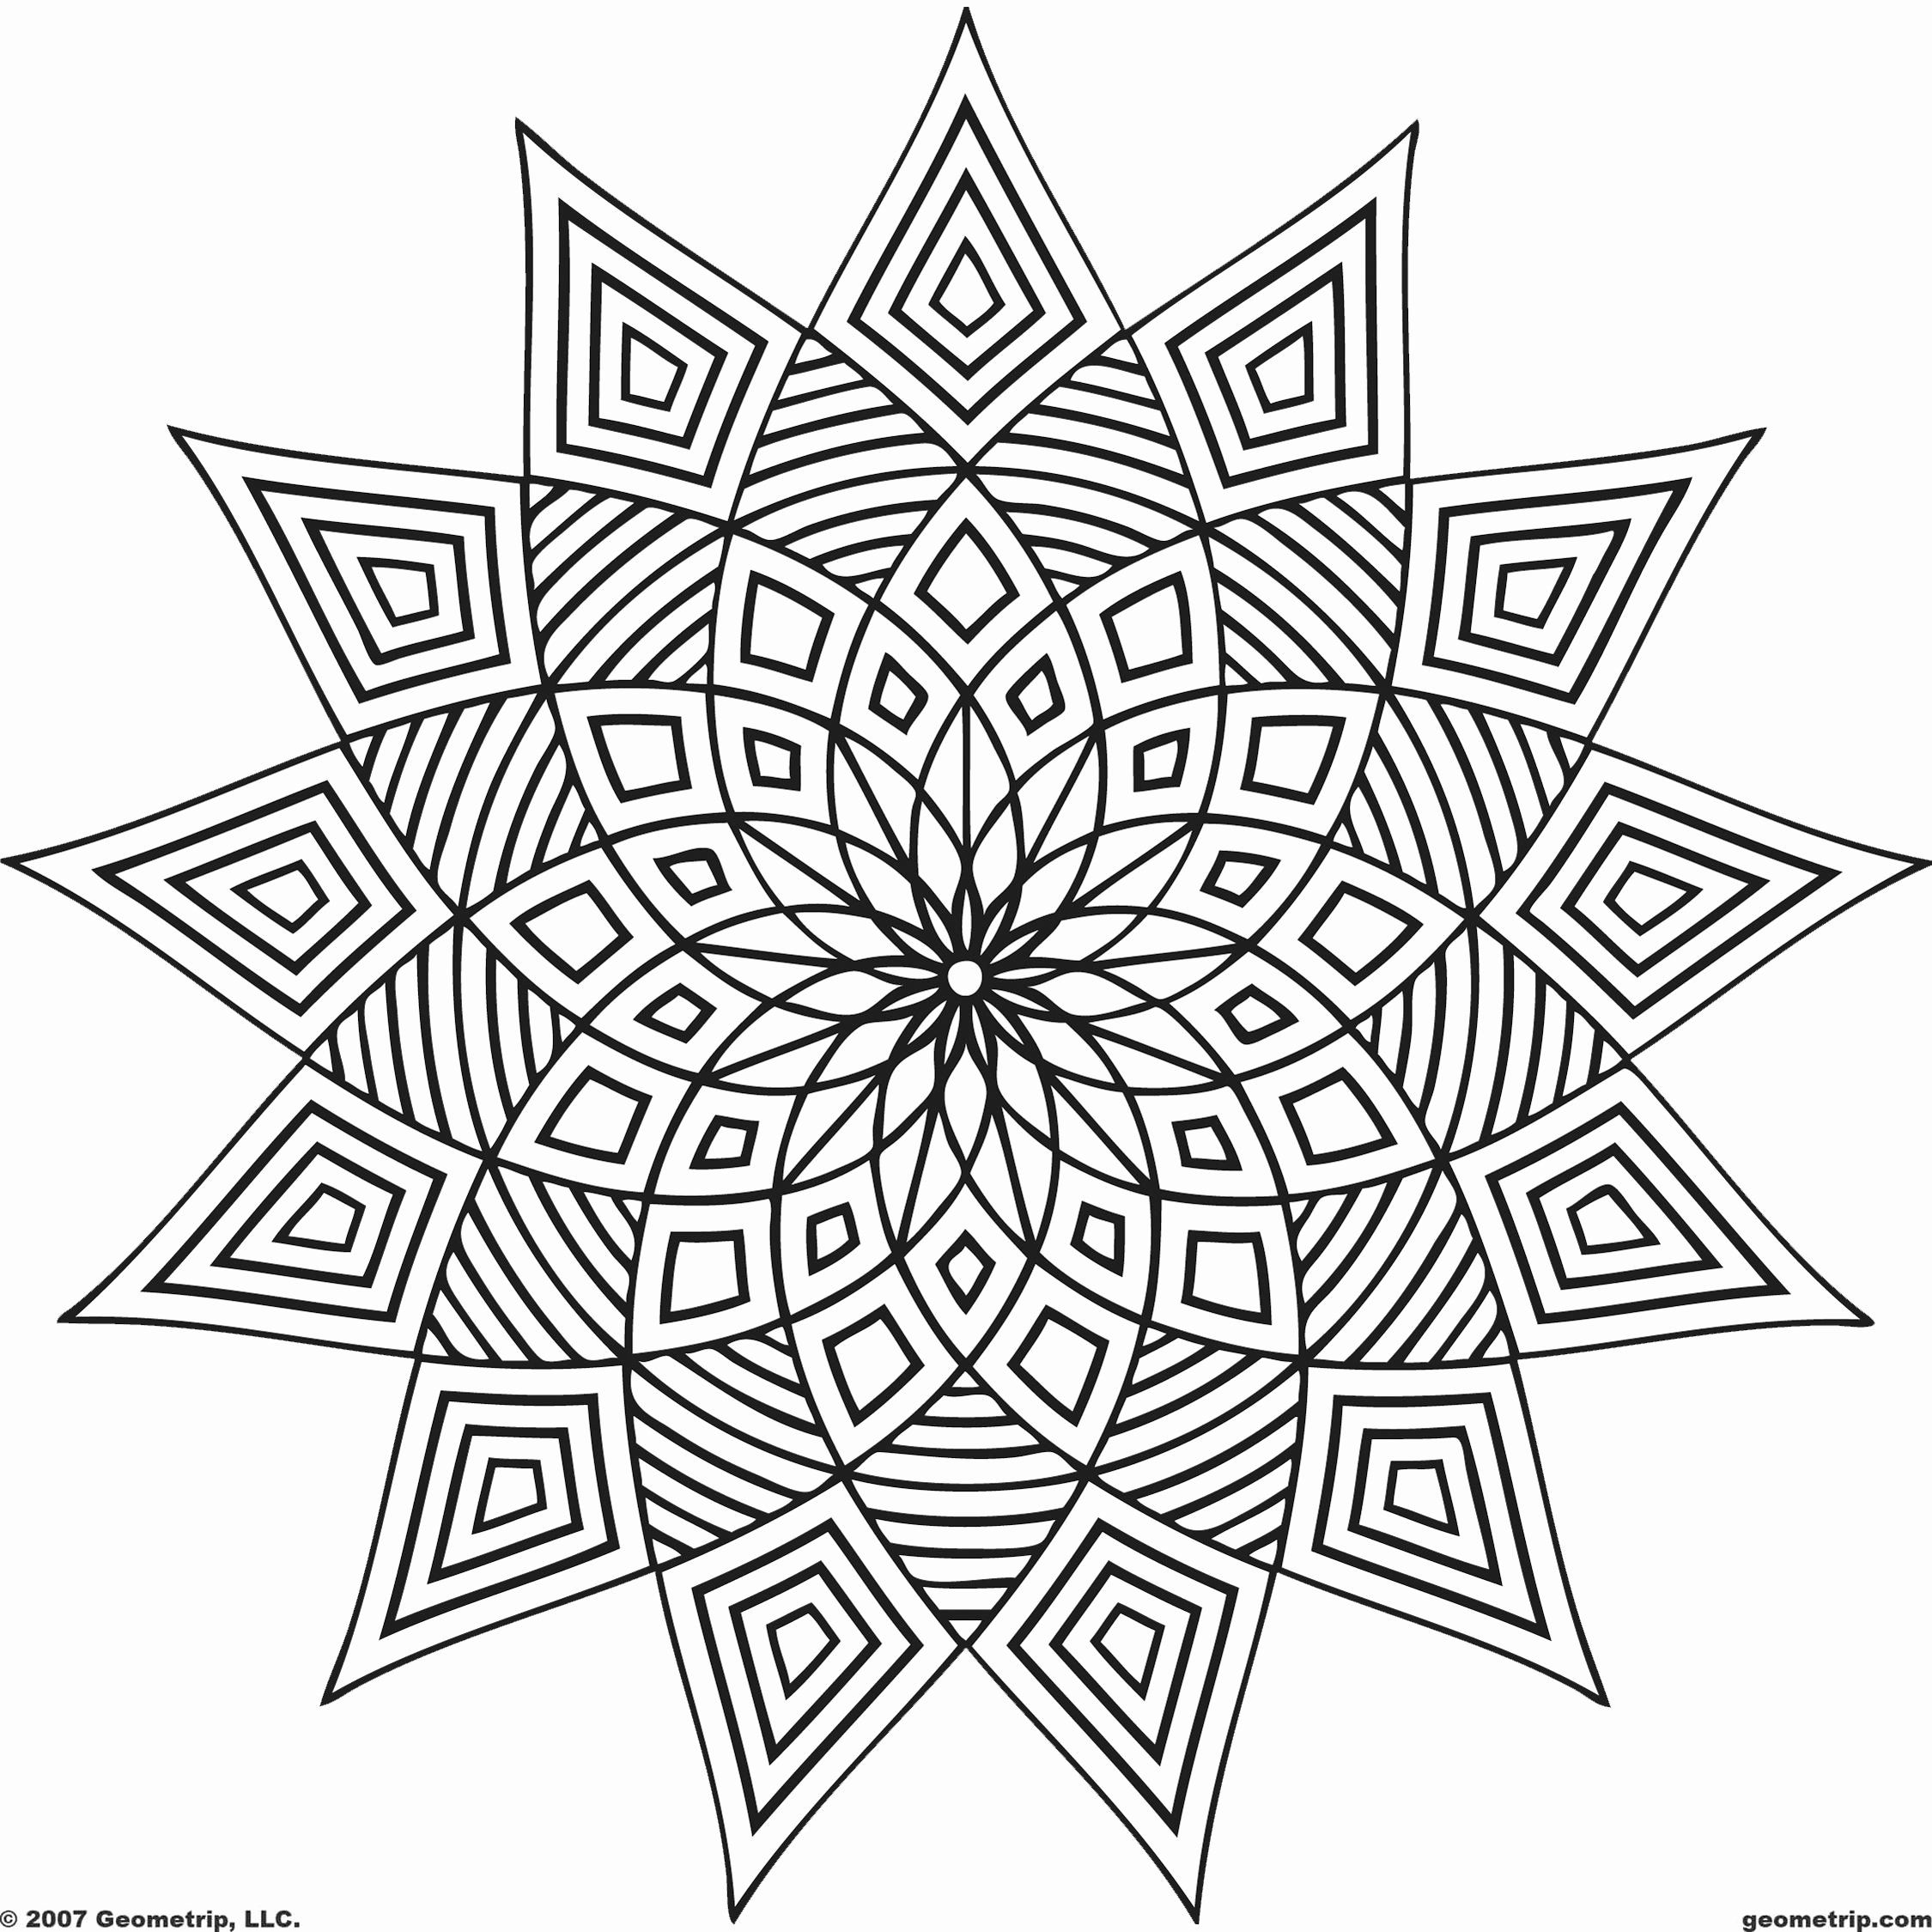 Symmetry Coloring Design Worksheets Inspirational Coloring Book Freentable Geometric Co Geometric Coloring Pages Abstract Coloring Pages Pattern Coloring Pages